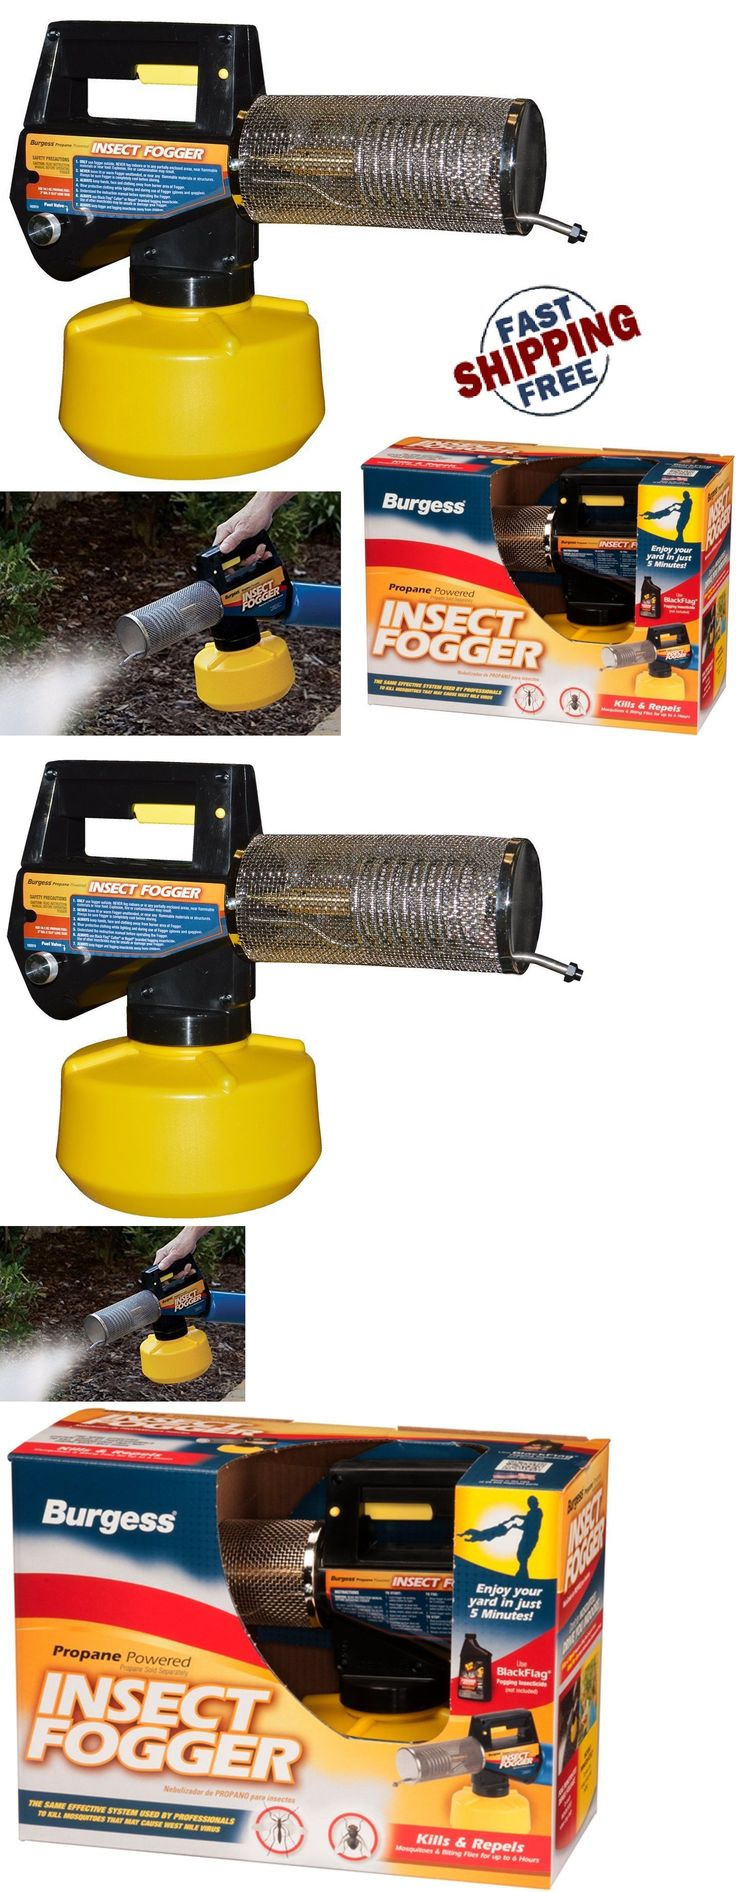 Foggers 181037: Propane Insect Fogger Portable Outdoor Garden Yard Bug Mosquito Pest Control -> BUY IT NOW ONLY: $82.88 on eBay!